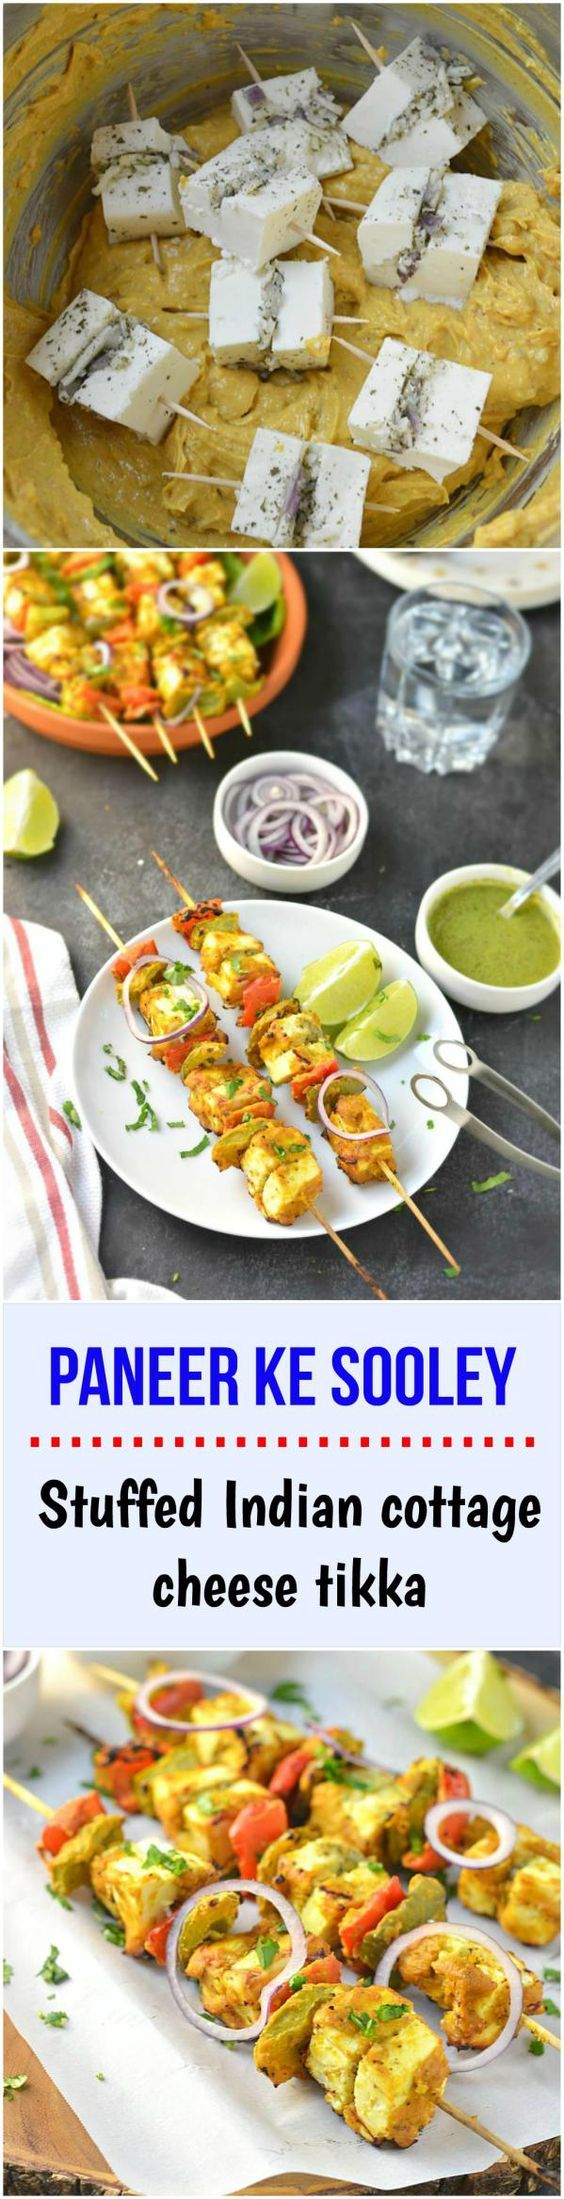 Paneer ke Sooley - Cubes of paneer (Indian cottage cheese) are stuffed with cheese, marinated with yogurt, aromatic spices and grilled to perfection!